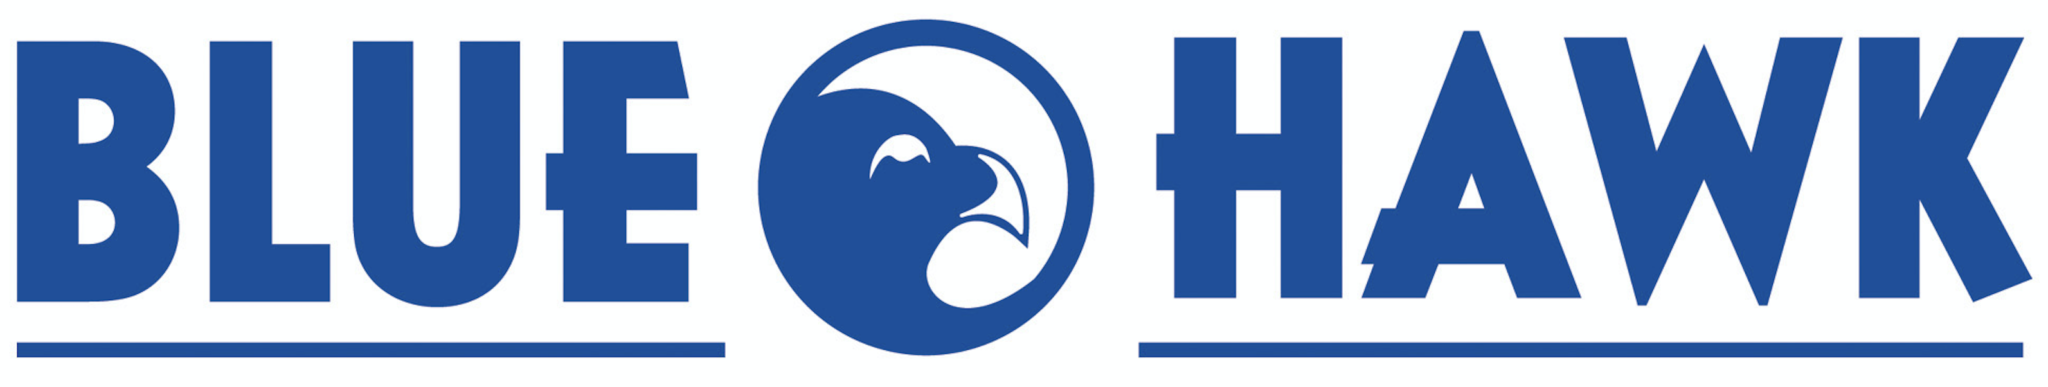 blue hawk logo